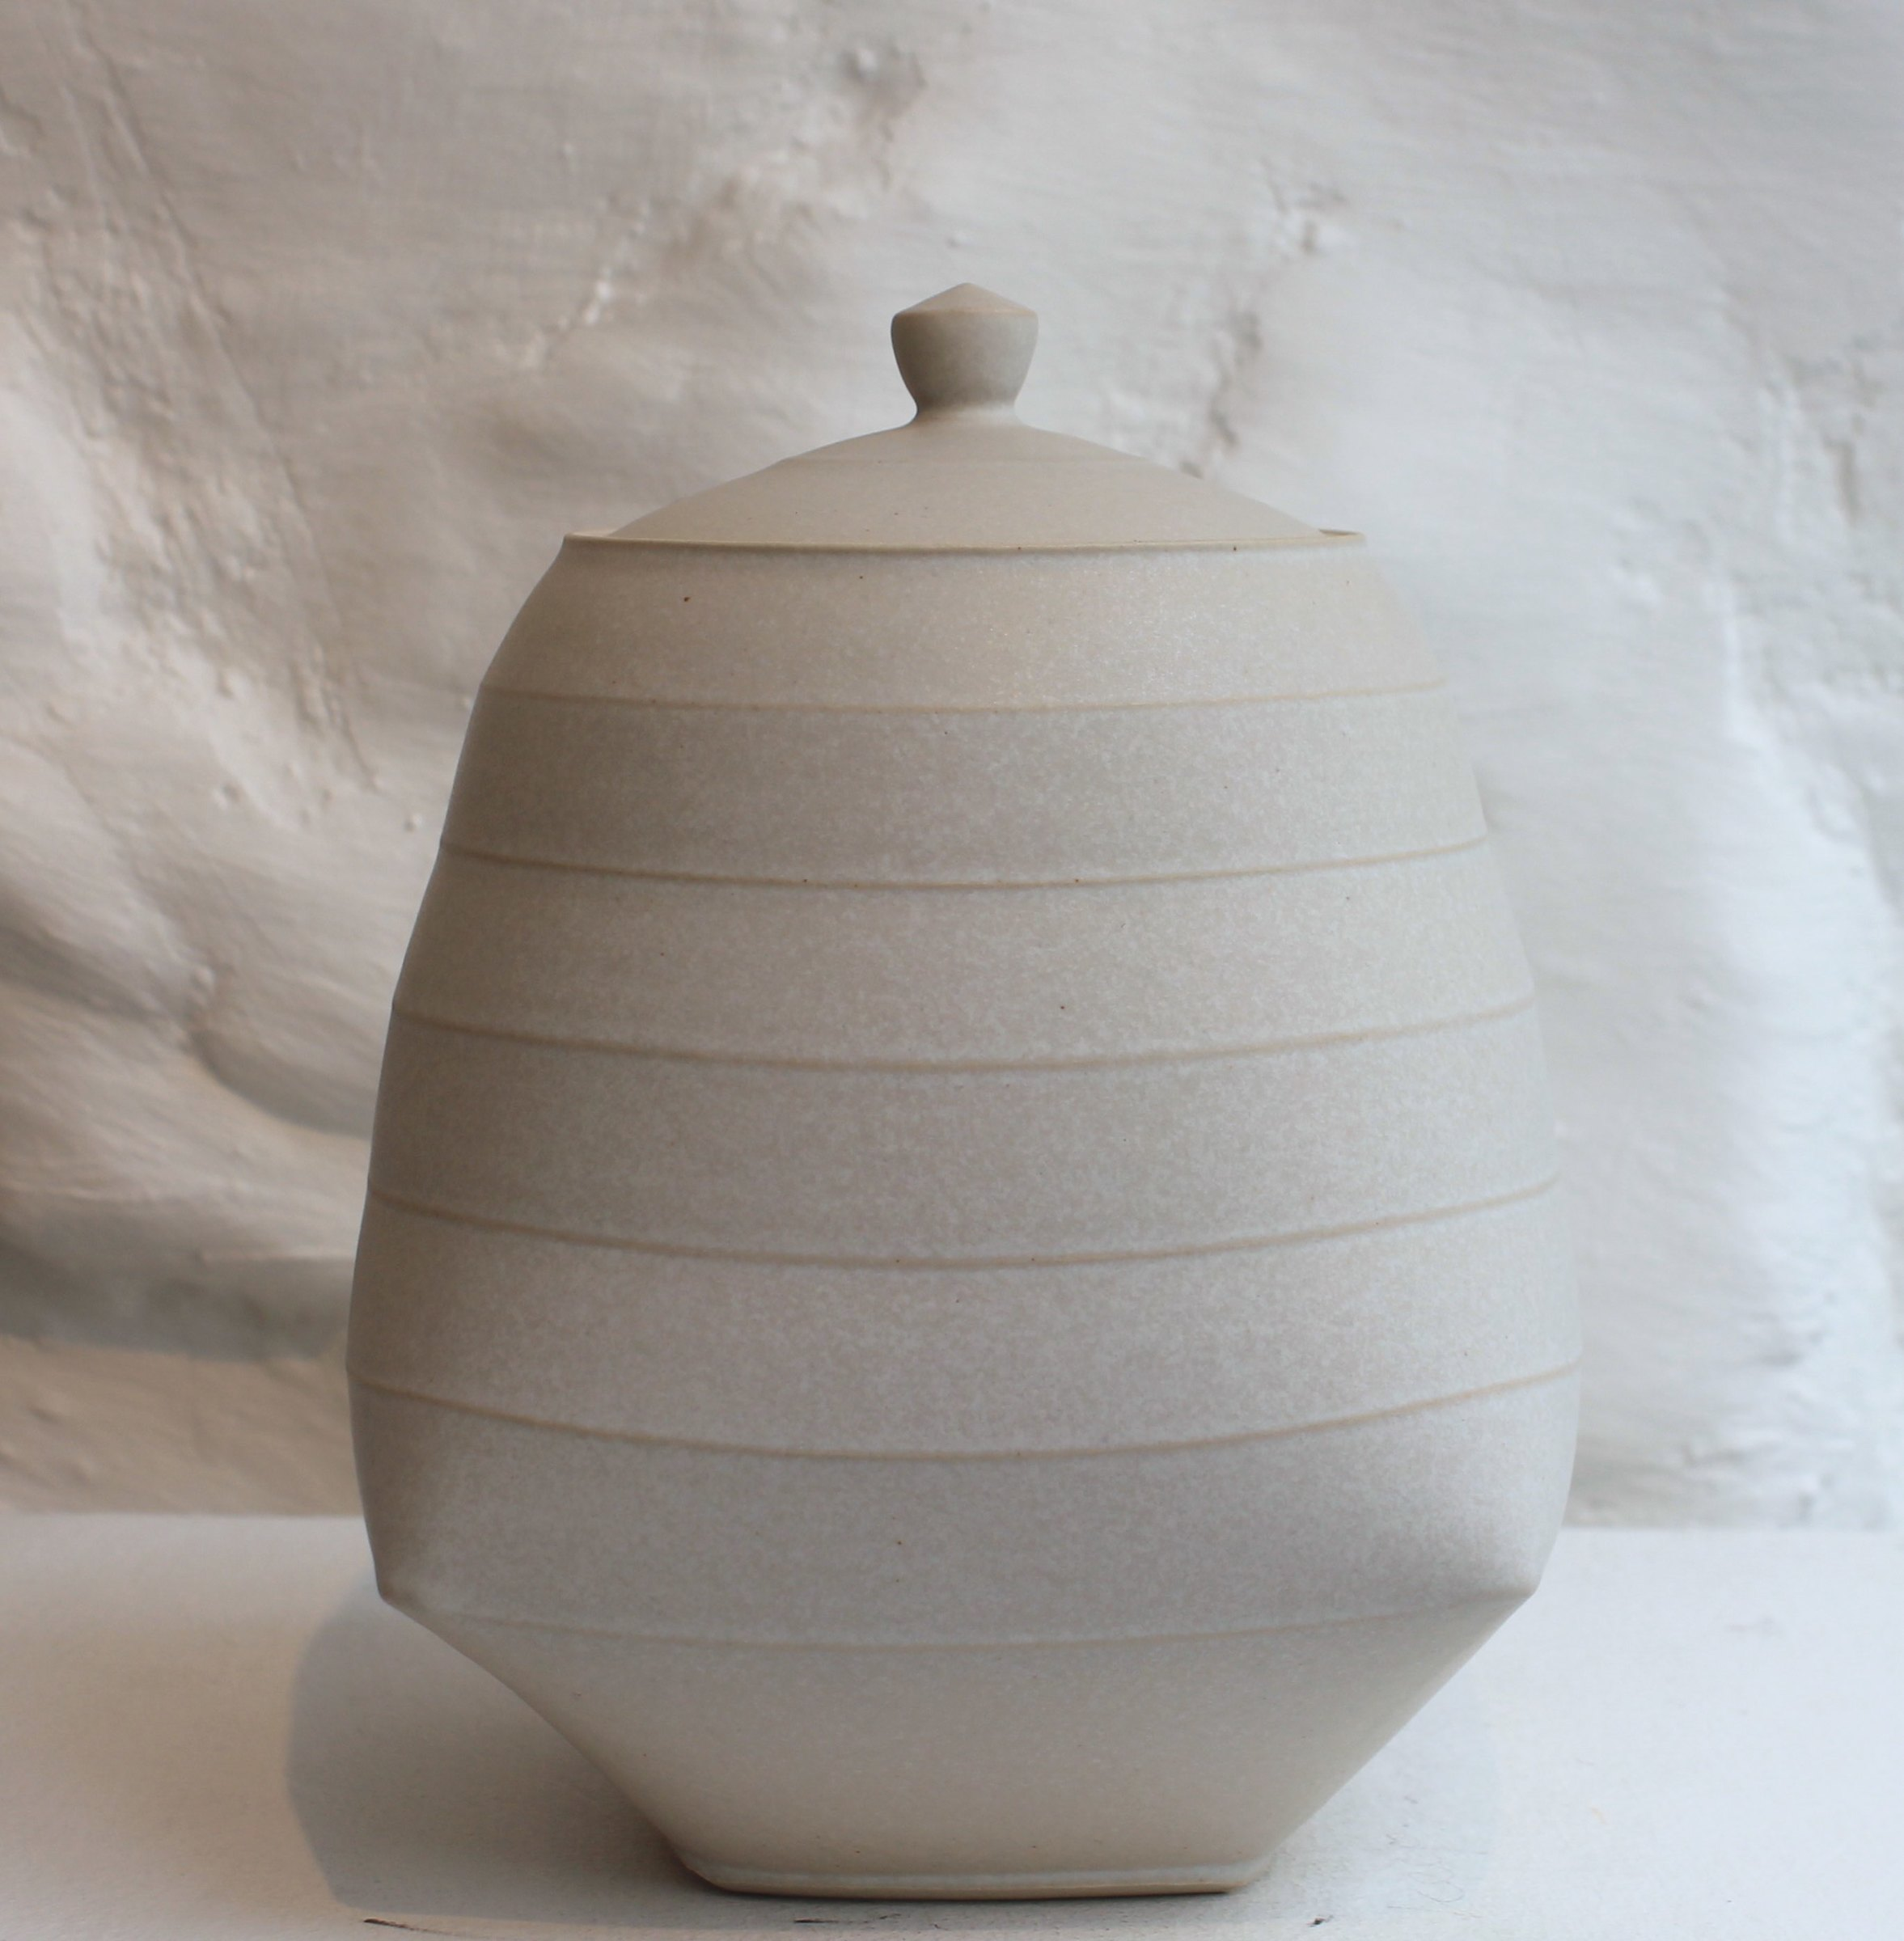 "<span class=""link fancybox-details-link""><a href=""/artists/33-sun-kim/works/5744-sun-kim-medium-lidded-jar-2018/"">View Detail Page</a></span><div class=""artist""><strong>Sun Kim</strong></div> <div class=""title""><em>Medium Lidded Jar</em>, 2018</div> <div class=""signed_and_dated"">stamped by the artist</div> <div class=""medium"">porcelain</div> <div class=""dimensions"">19 x 12 x 9.5 cm<br /> 7 1/2 x 4 3/4 x 3 3/4 inches</div><div class=""copyright_line"">OwnArt: £ 32 x 10 Months, 0% APR</div>"